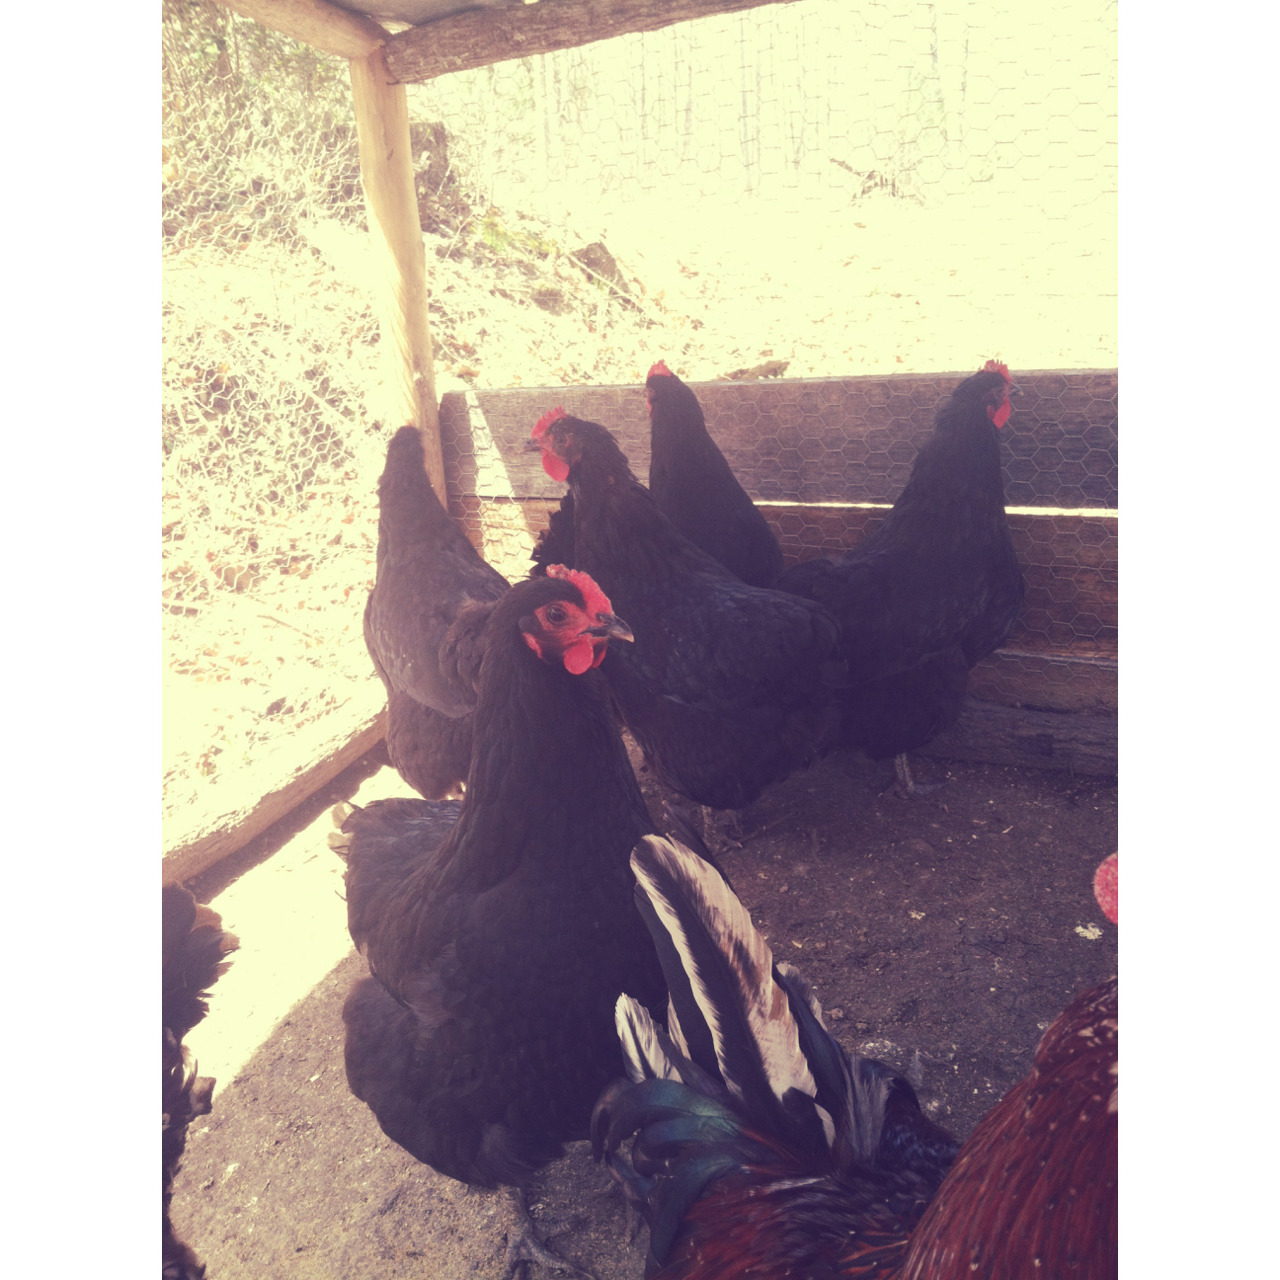 New addition to our flock, 5 black Australorp hens. We already got an egg from them today! They are very sweet and gentle.